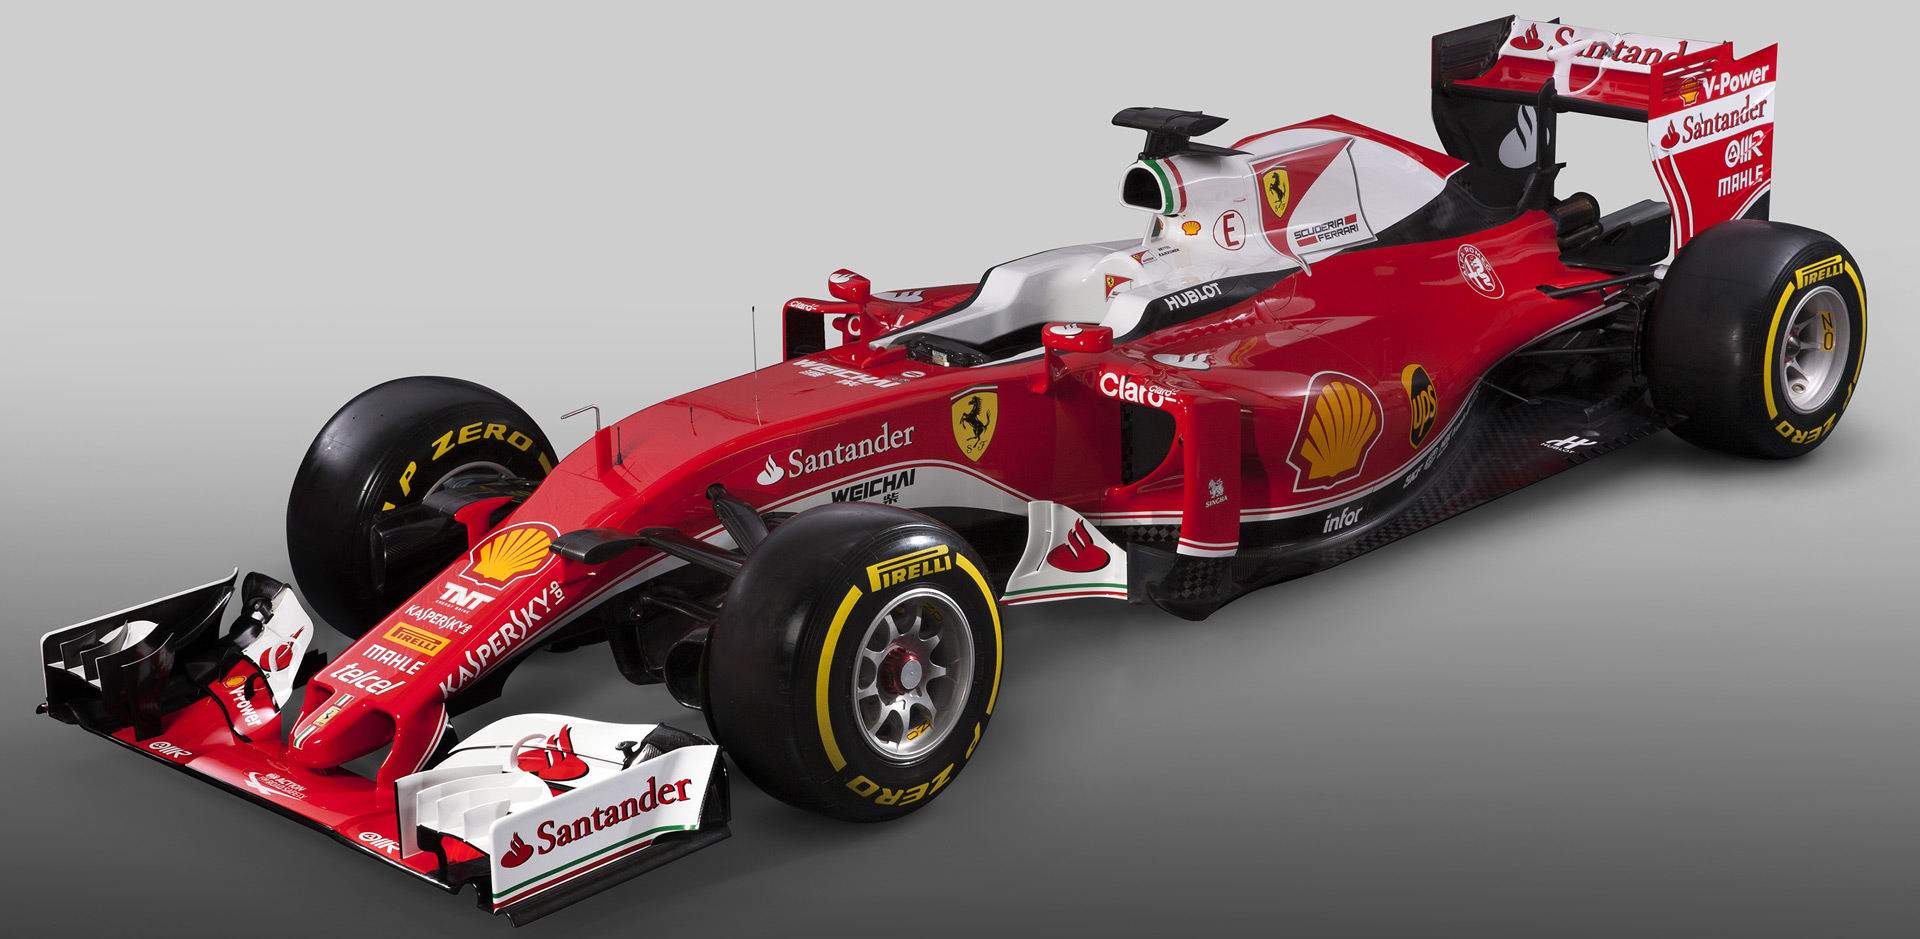 ferrari s race car for the 2016 f1 season is the sf16 h. Black Bedroom Furniture Sets. Home Design Ideas